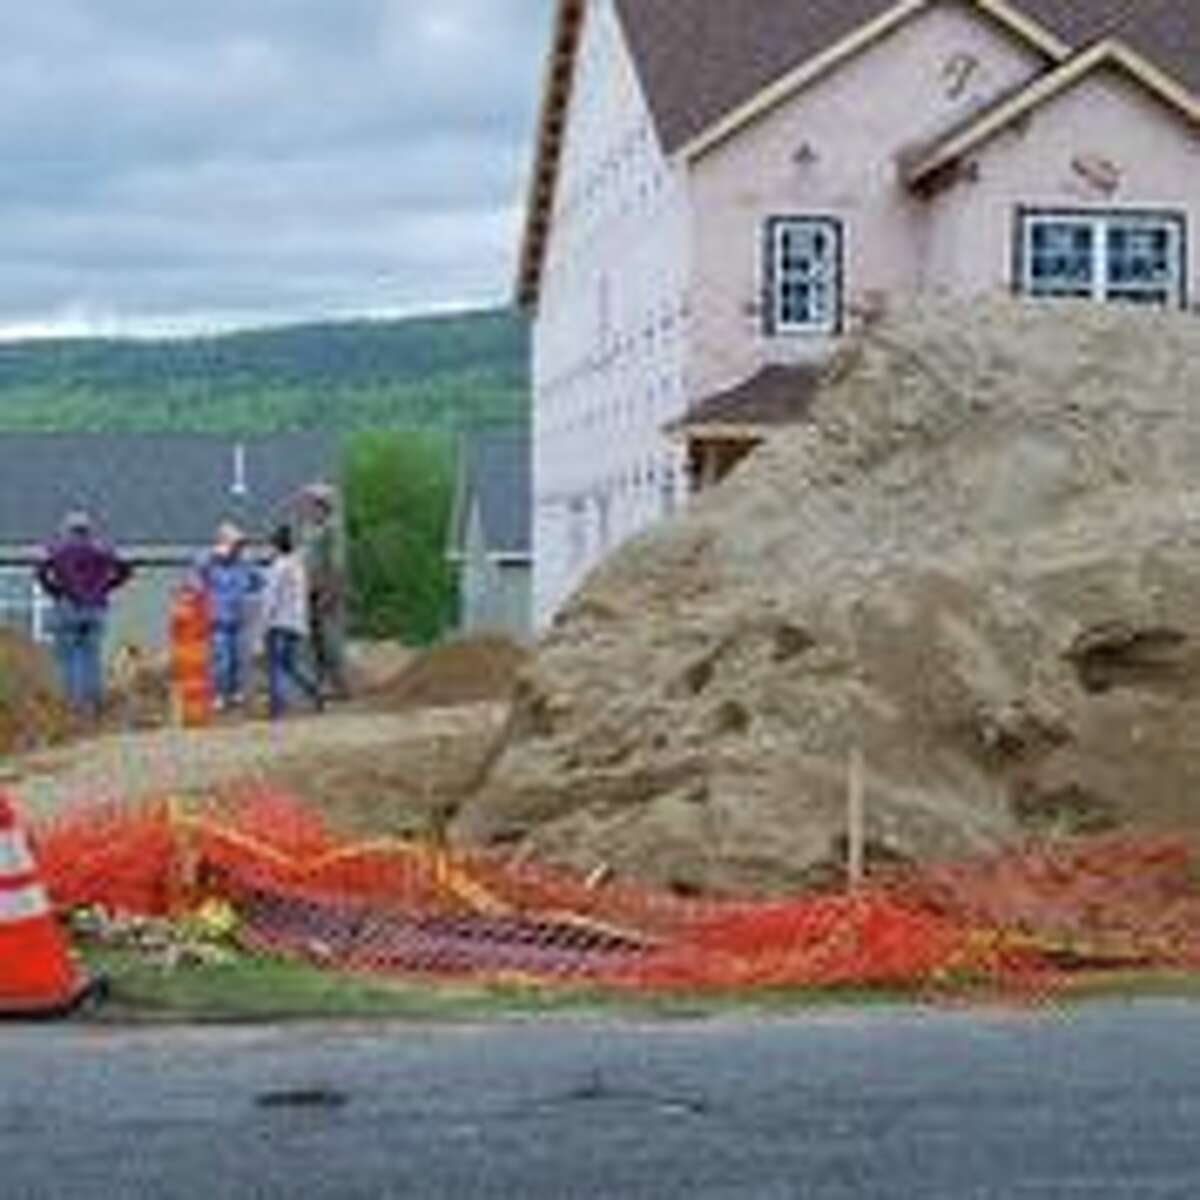 Volunteer archaeologists sifted a mound of dirt filled with the bones of Revolutionary War-era soldiers and people on May 24, 2019 in the village of Lake George. (Photo courtesy of the state Department of Environmental Conservation)